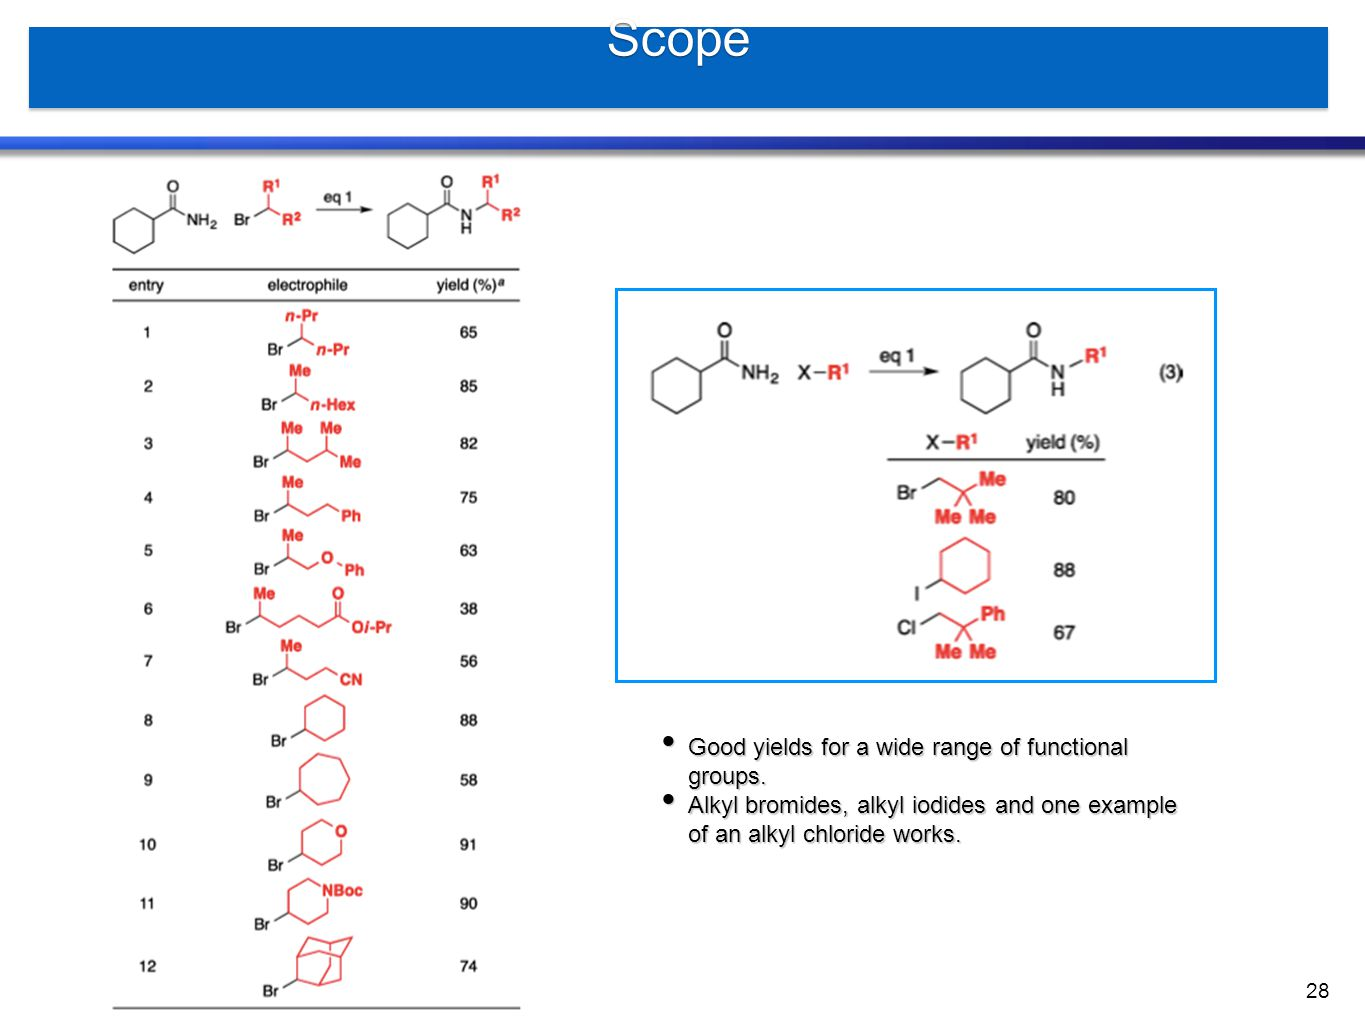 Scope Good yields for a wide range of functional groups.